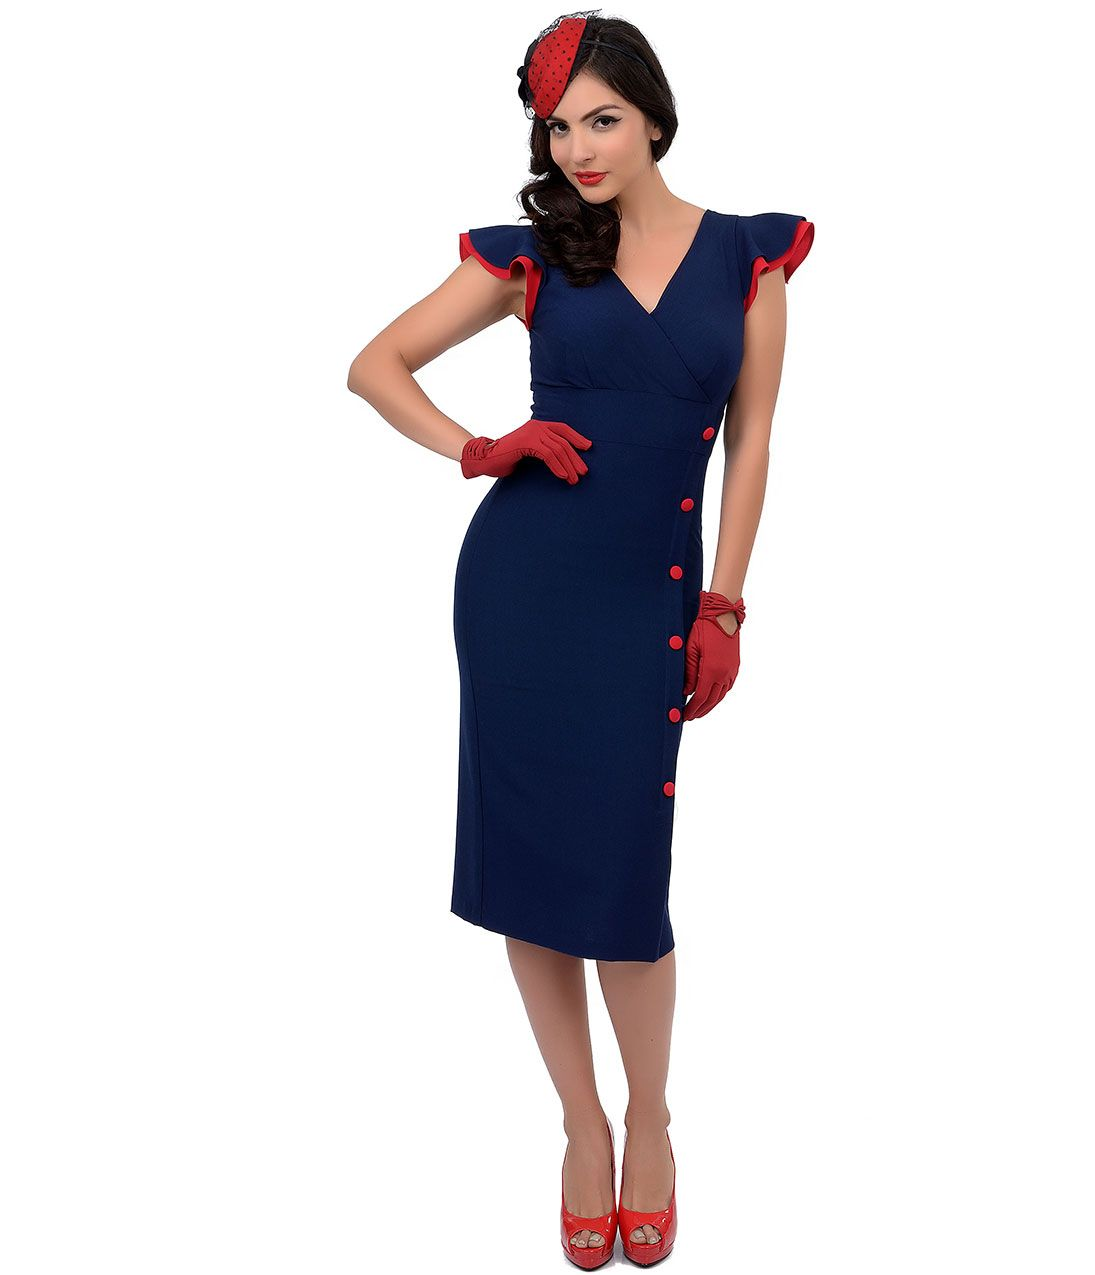 1940s Style Dresses, Fashion & Clothing | Vintage Inspired ...